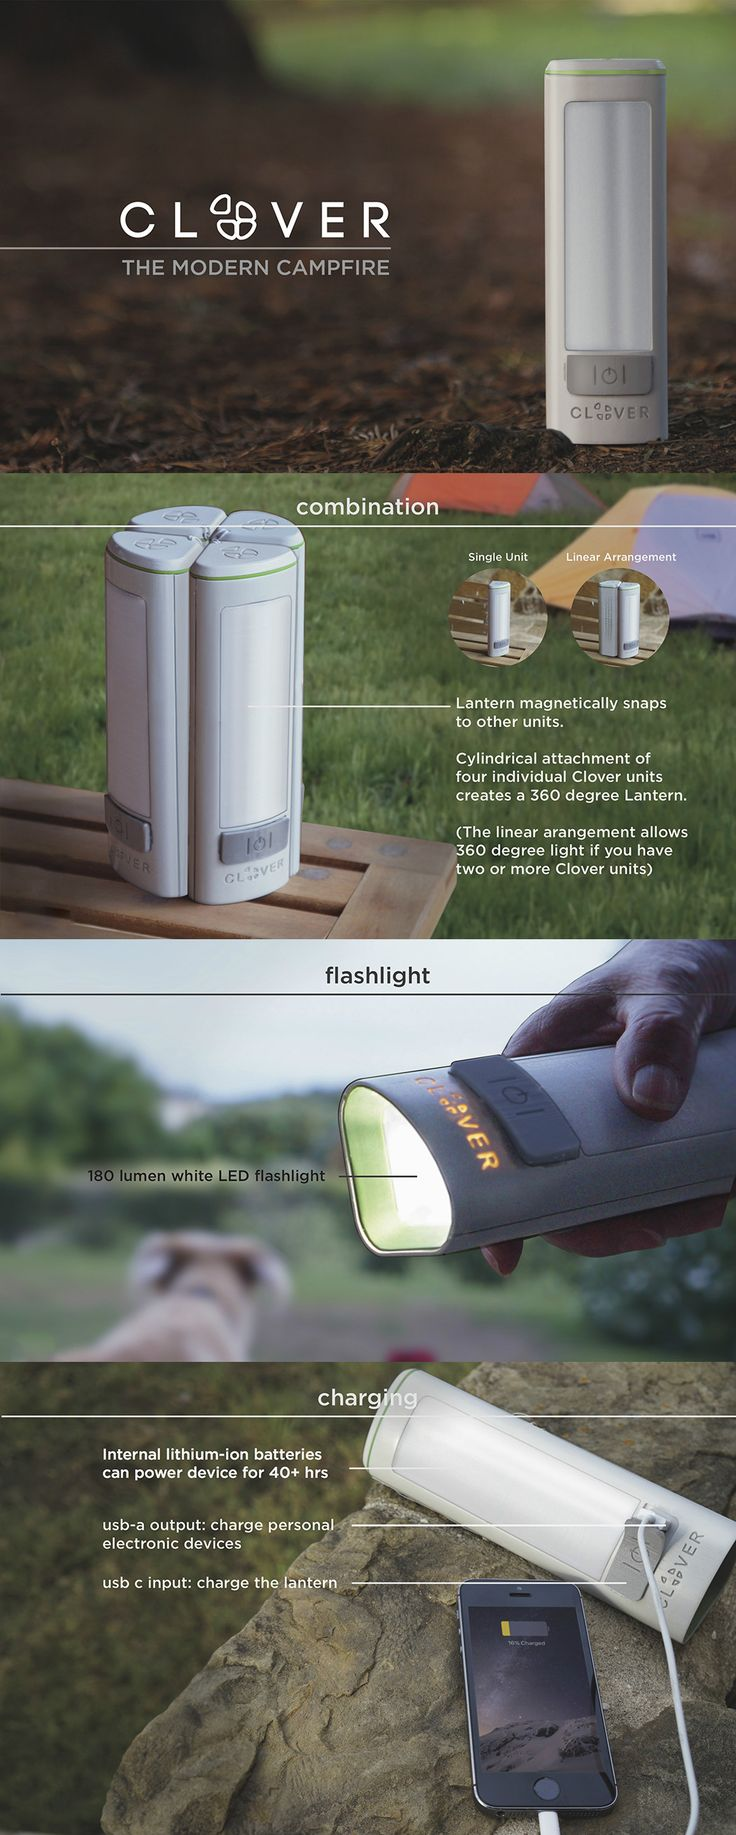 REPLACING THE CAMPFIRE WITH 'LAMP'FIRE | READ FULL STORY AT YANKO DESIGN